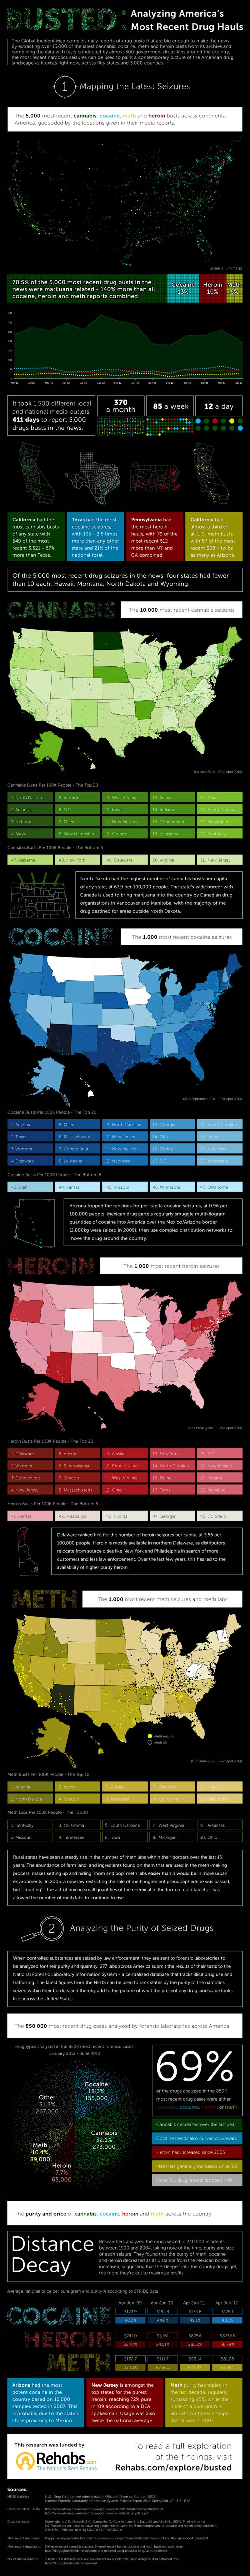 Explore America's Drug Busts